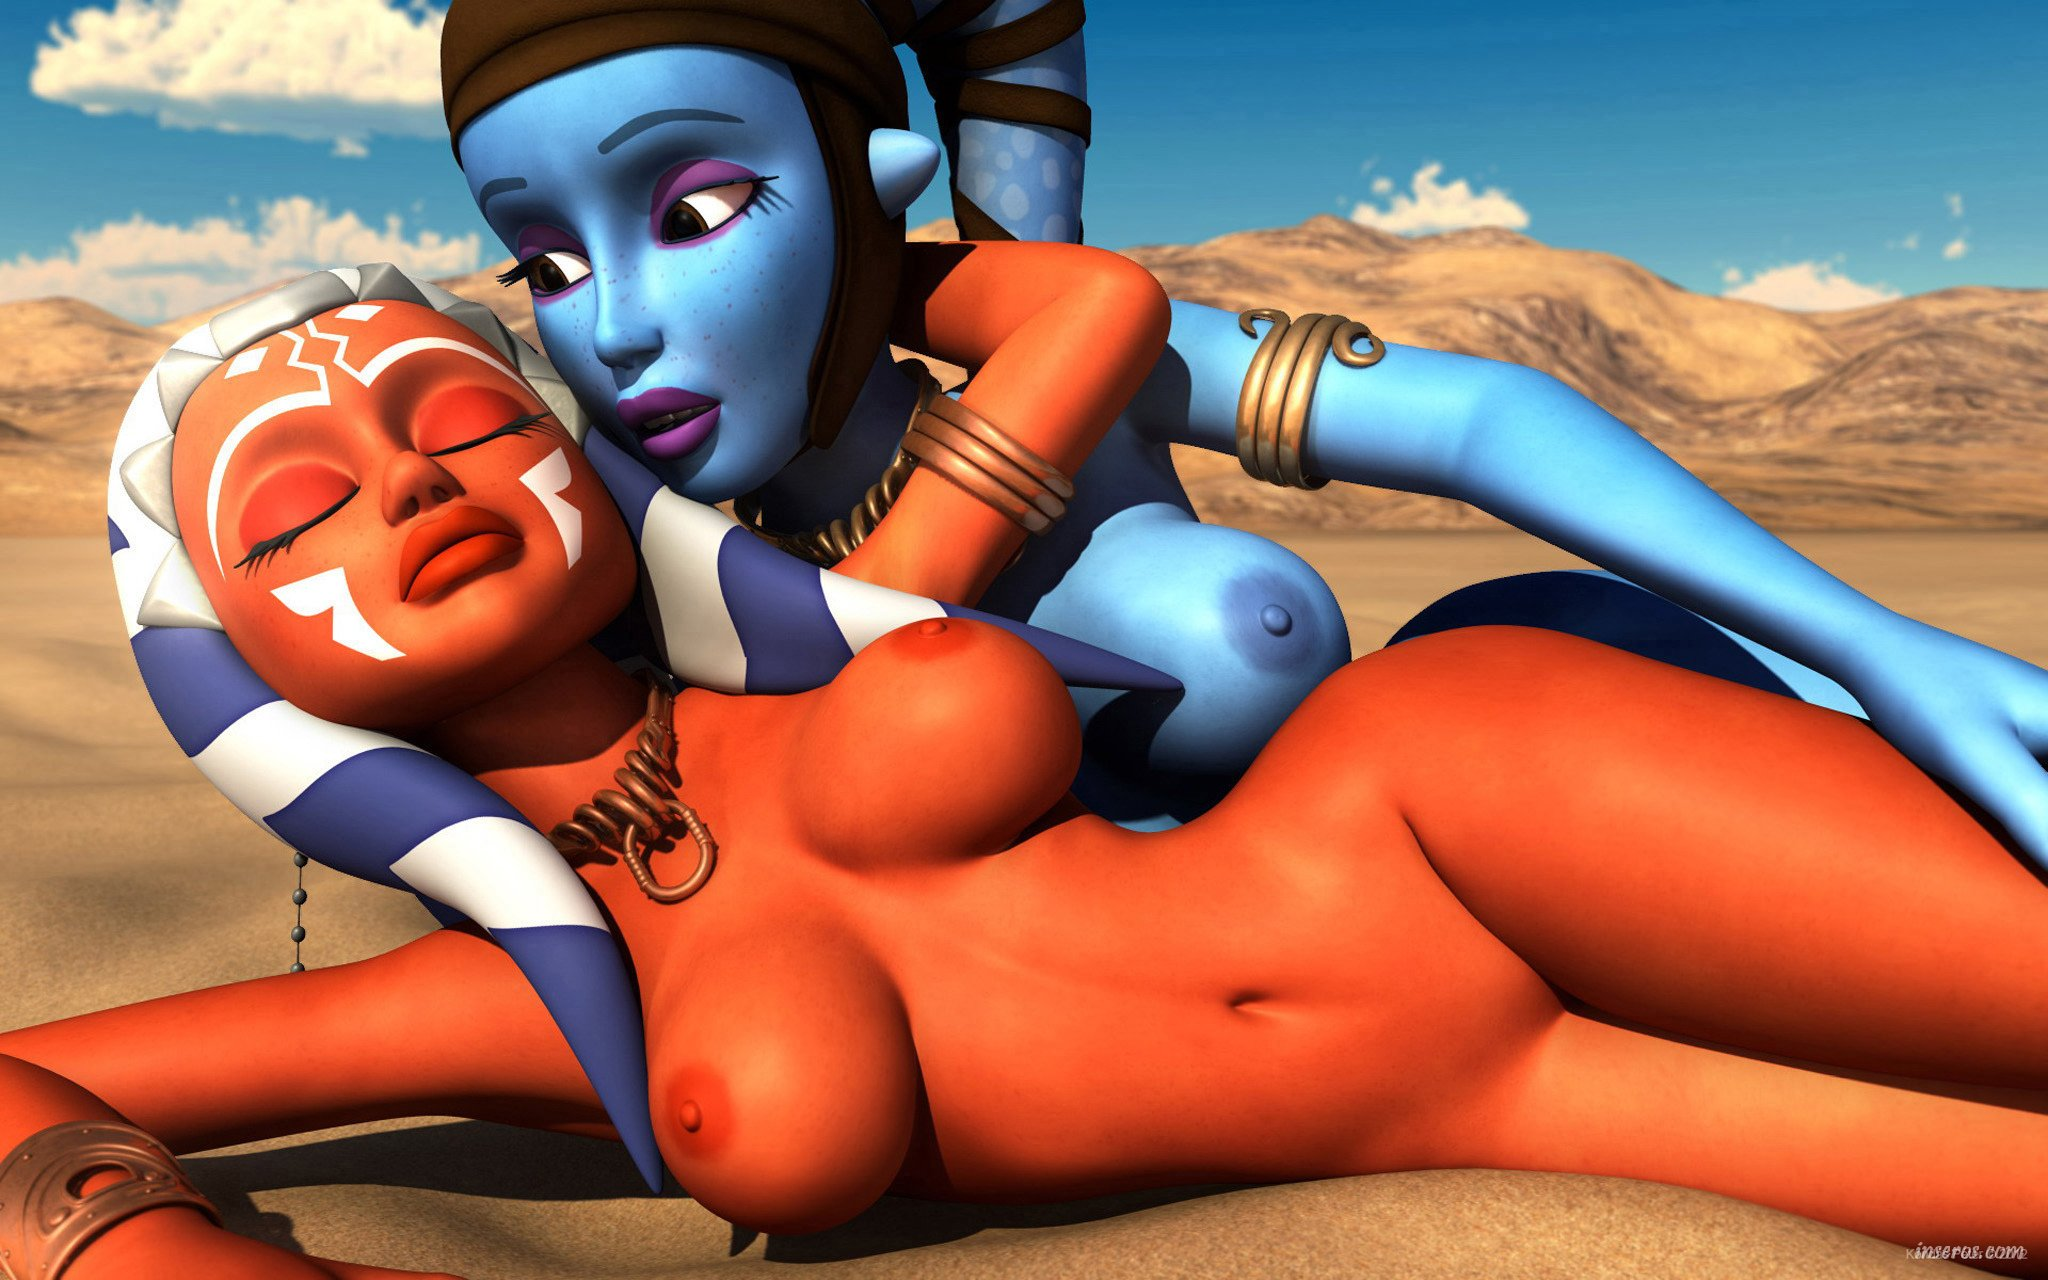 Ahsoka tano star wars naked sexy videos